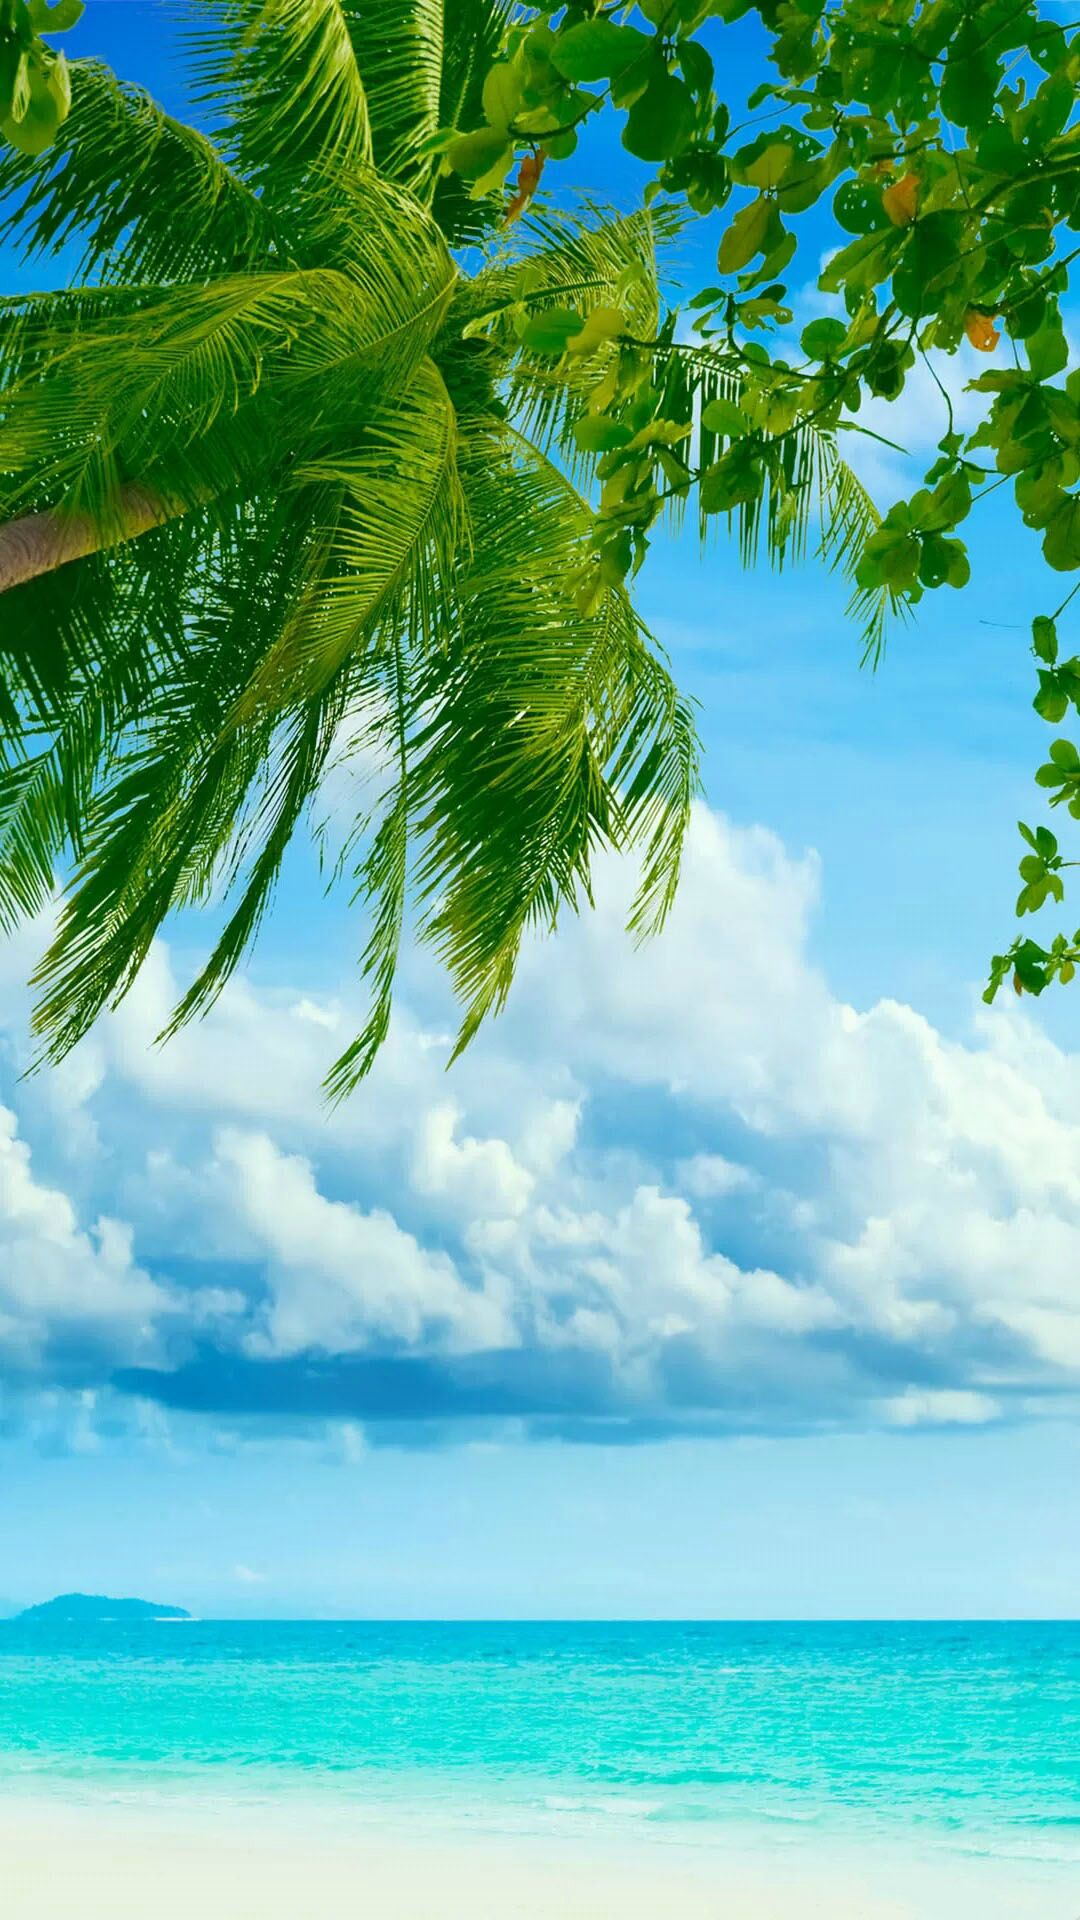 Wallpaper iphone tropical - 70 Beautiful Nature Landscape Iphone 6 Wallpaper Free To Download